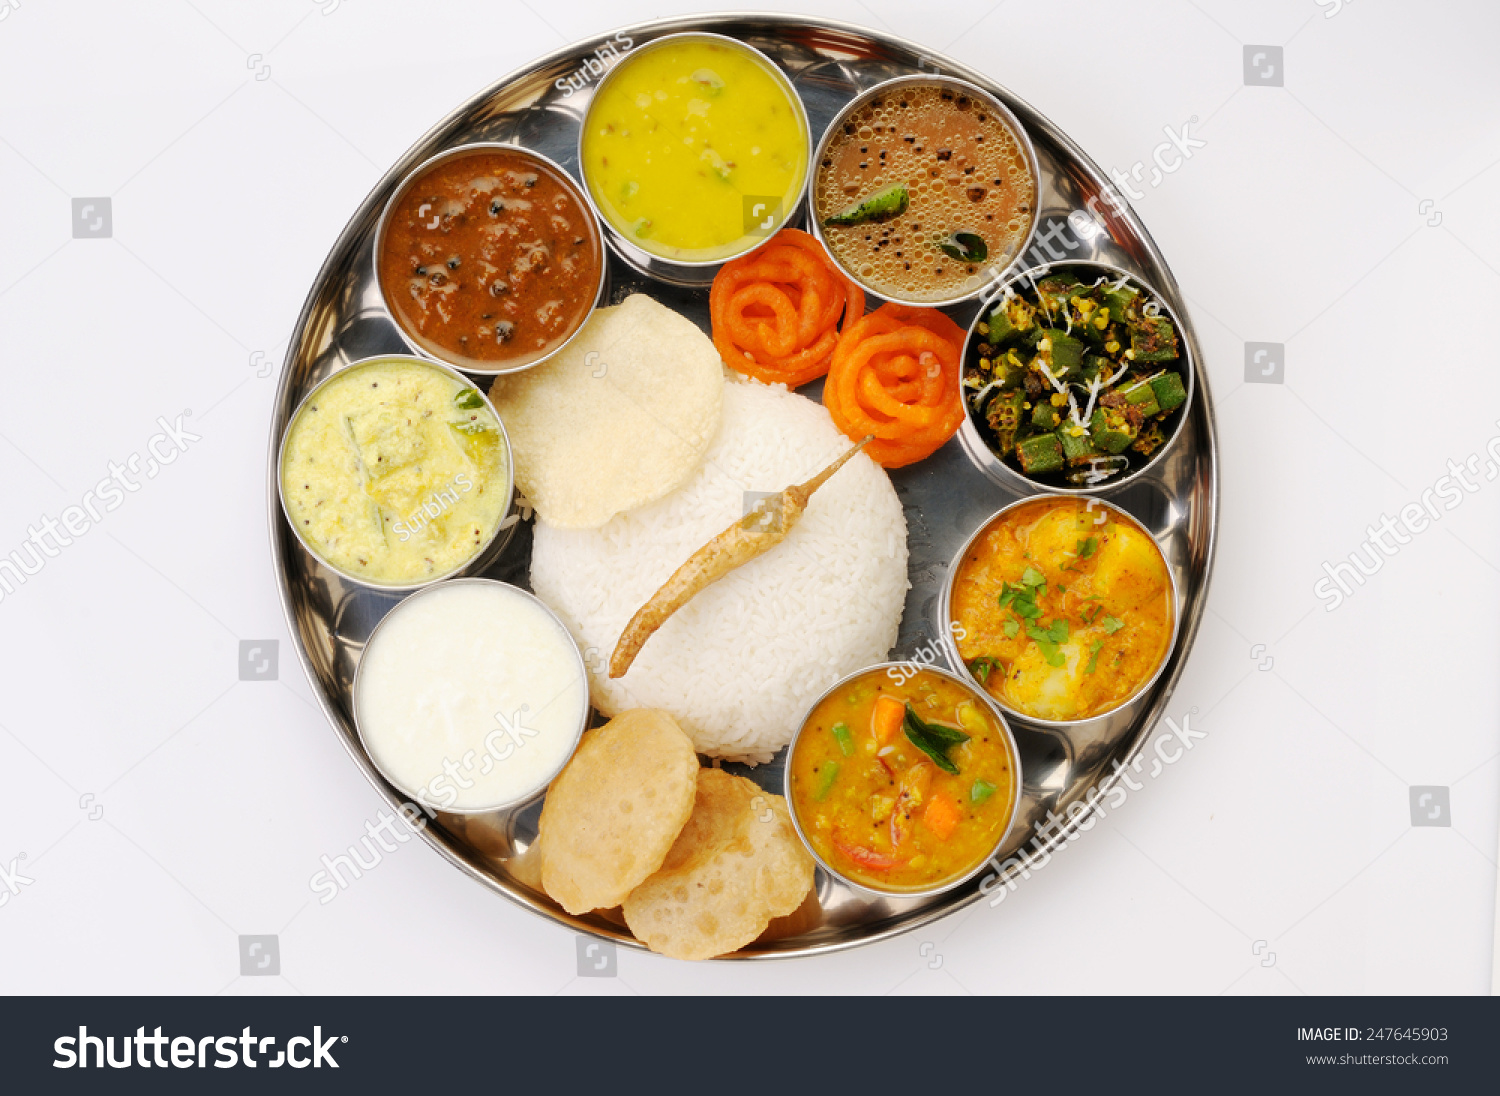 South Indian Food Pictures Images